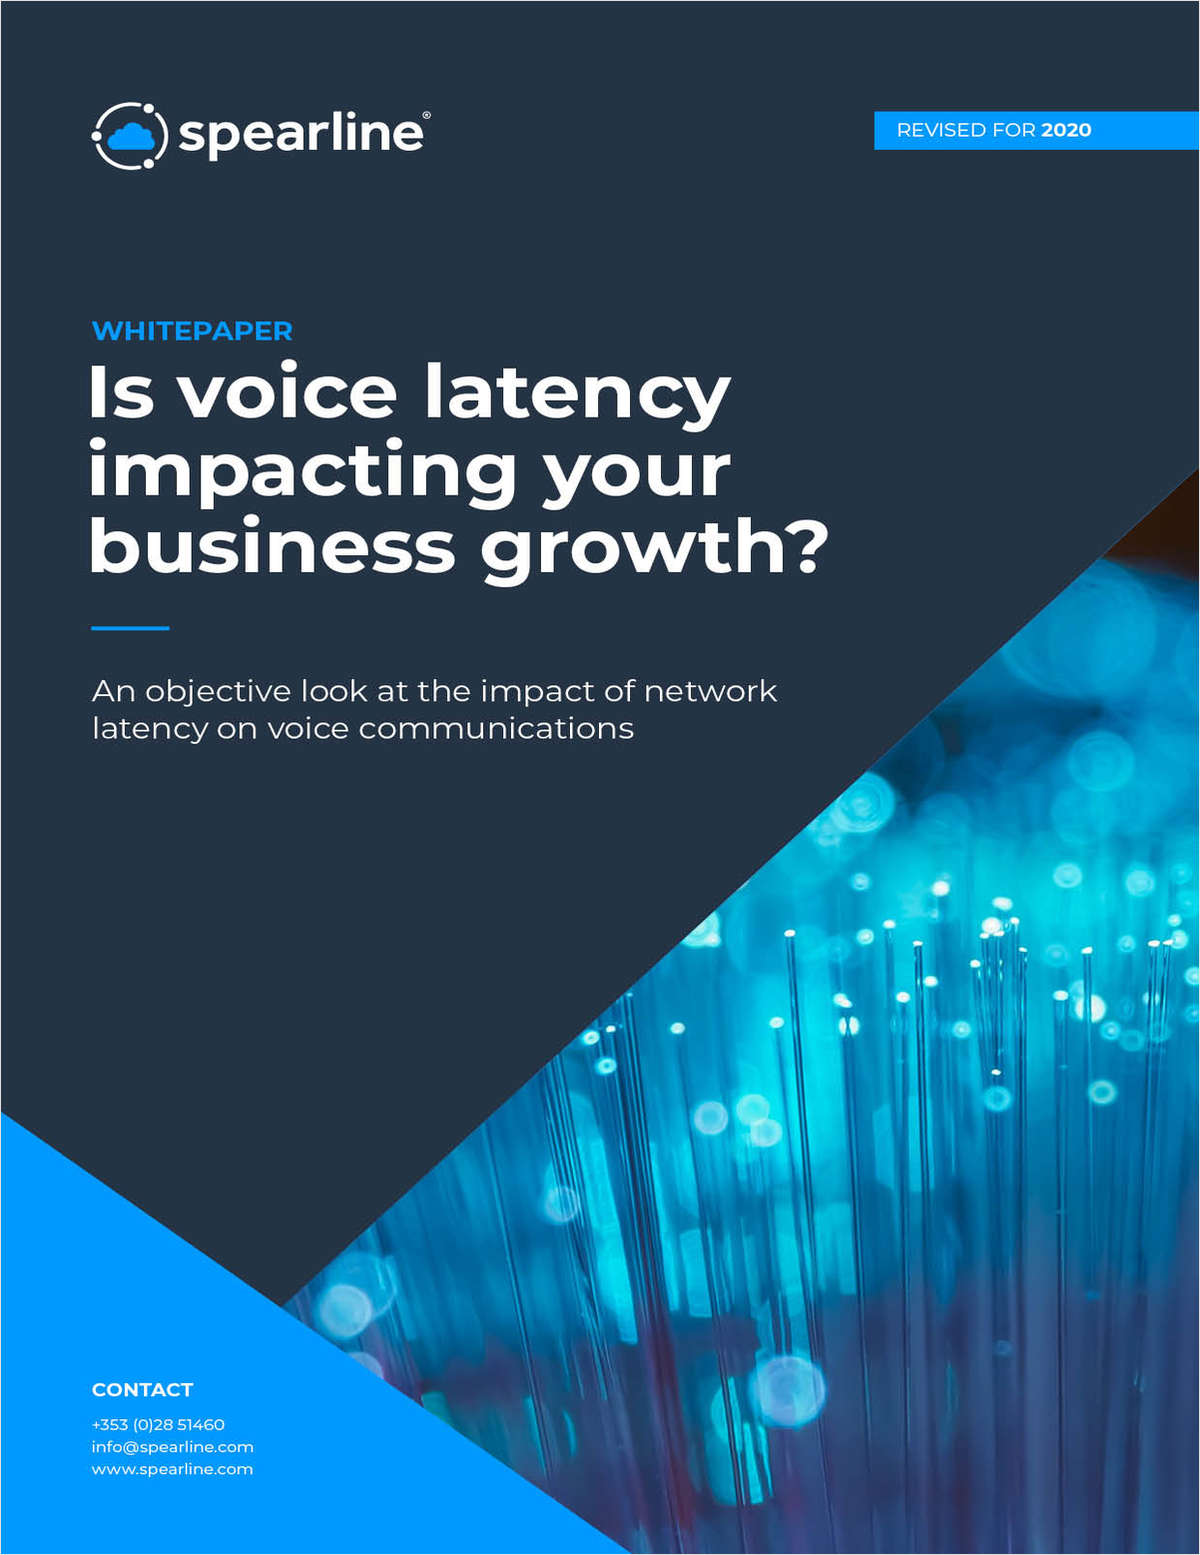 Is Voice Latency Impacting Your Business Growth?